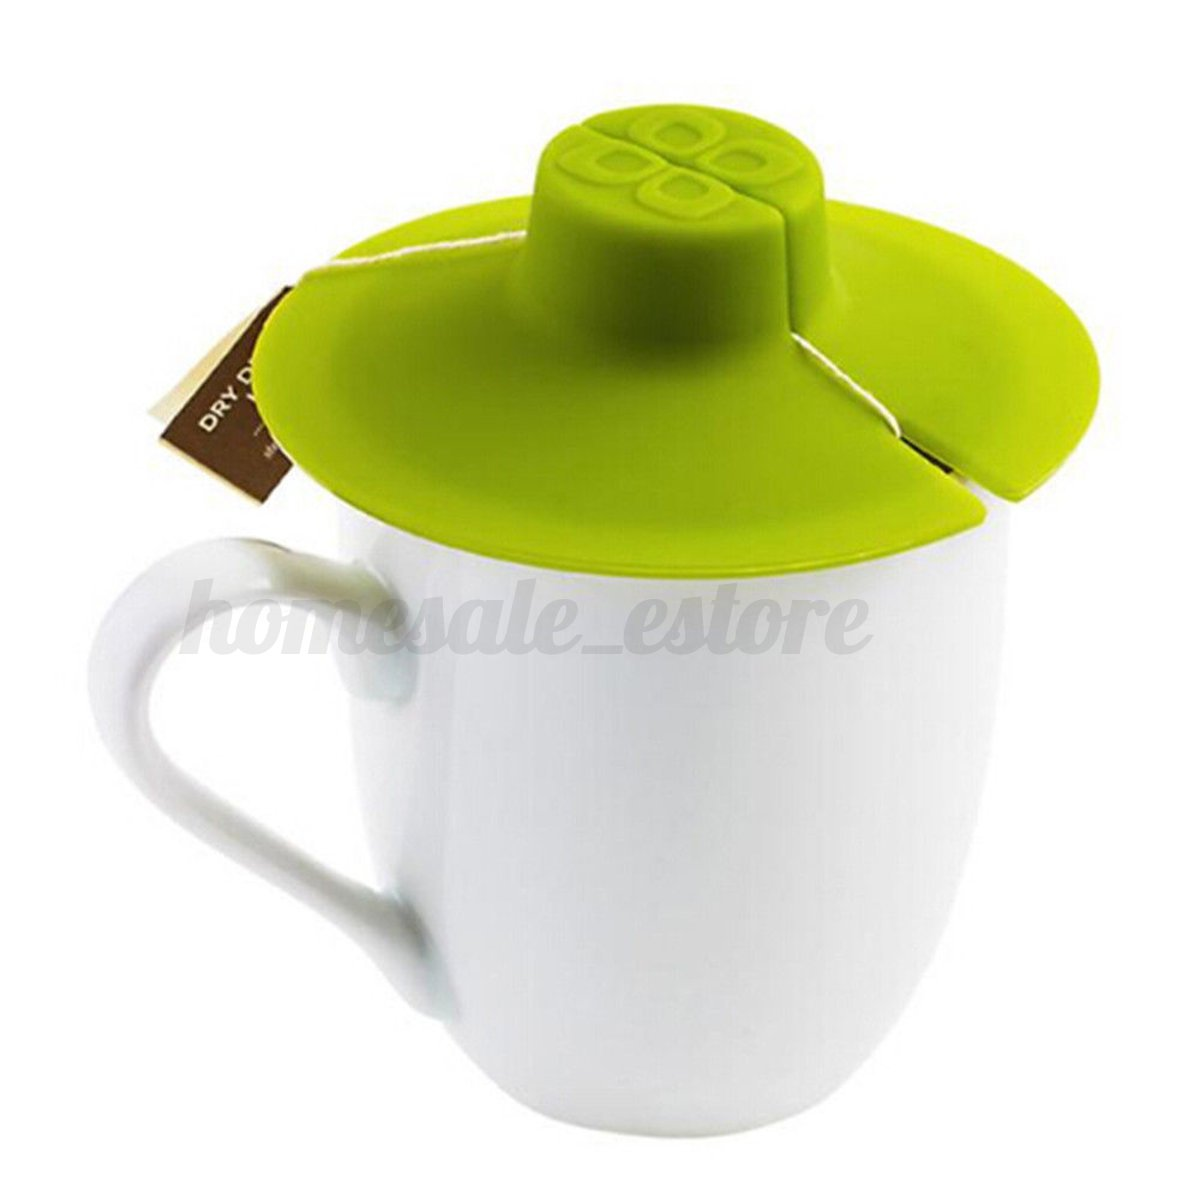 3pcs silicone tea bag buddy cup lid cover heat resistant kitchen drinkinig tools ebay. Black Bedroom Furniture Sets. Home Design Ideas